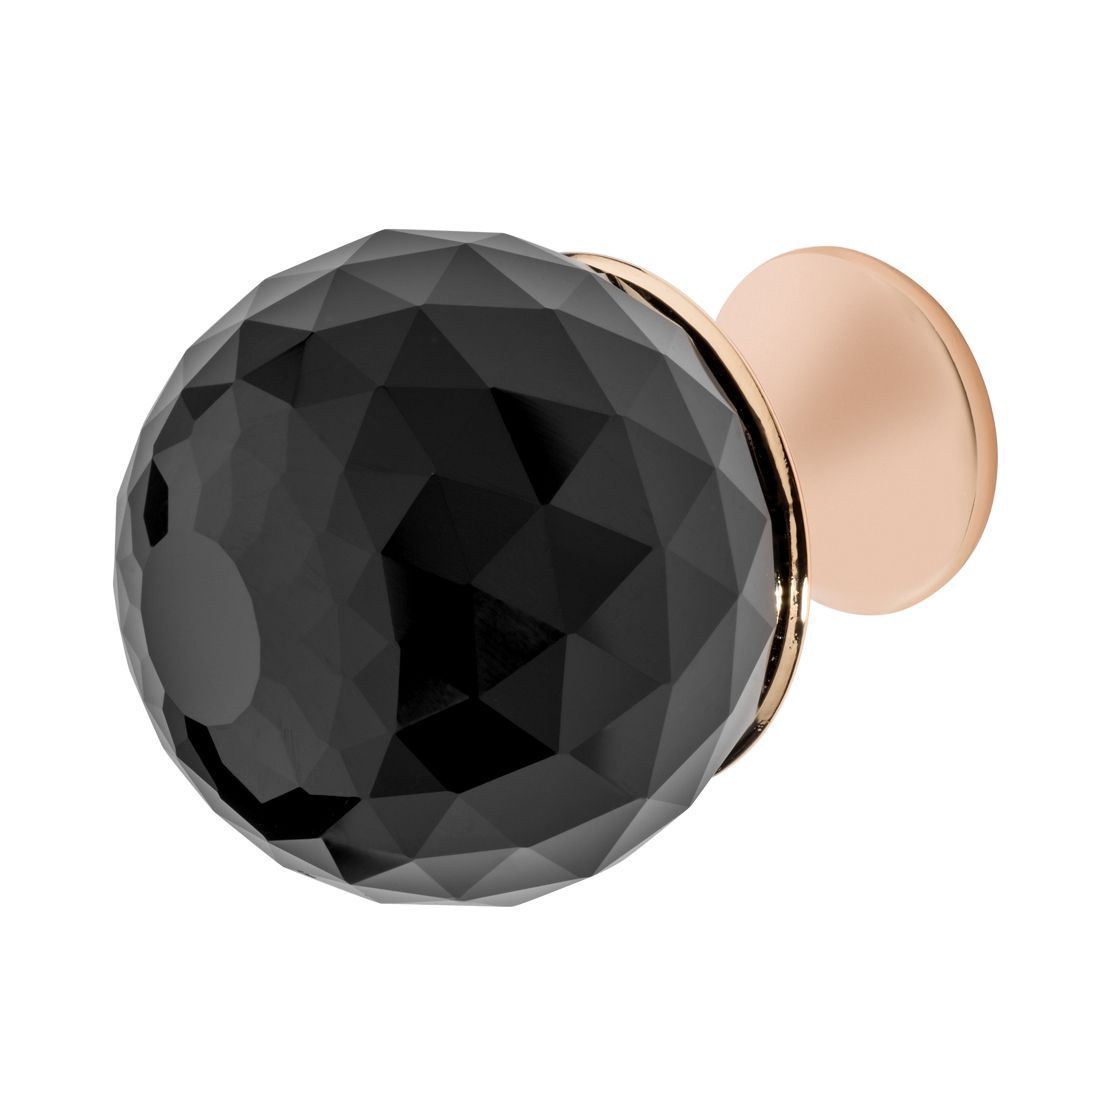 Rondure Knob, Rose Gold, Black